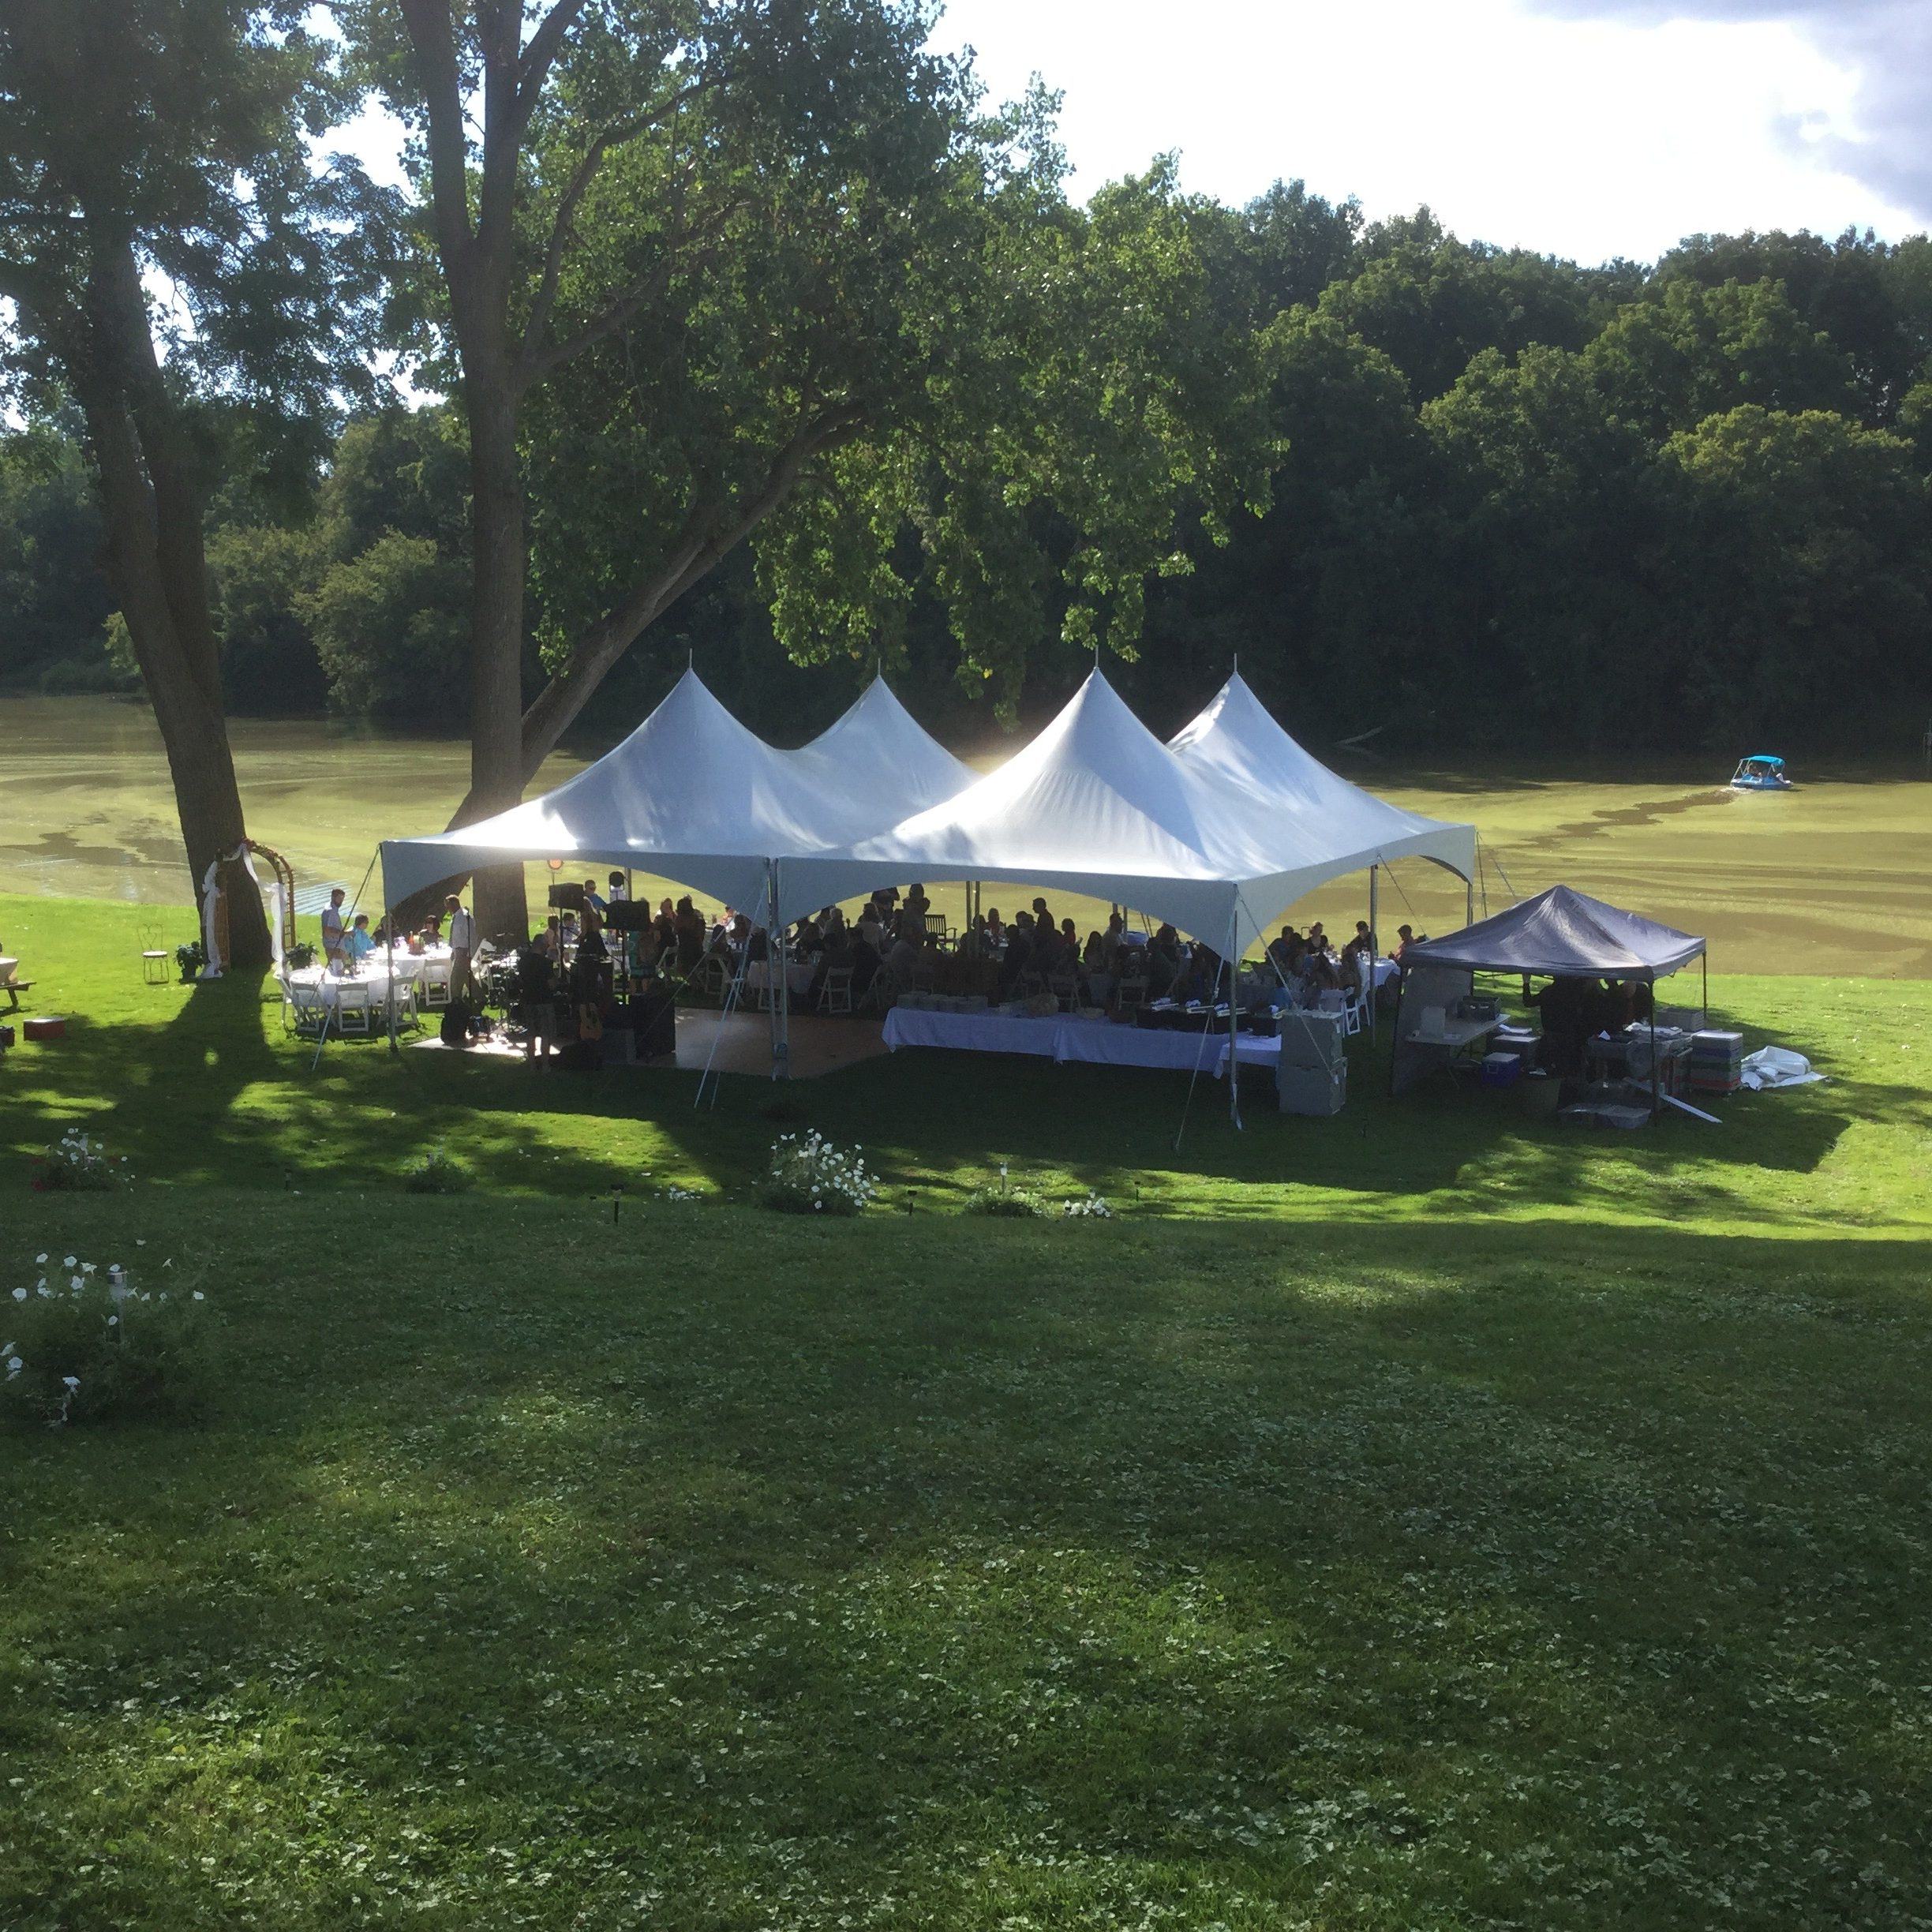 illustrates an outdoor party